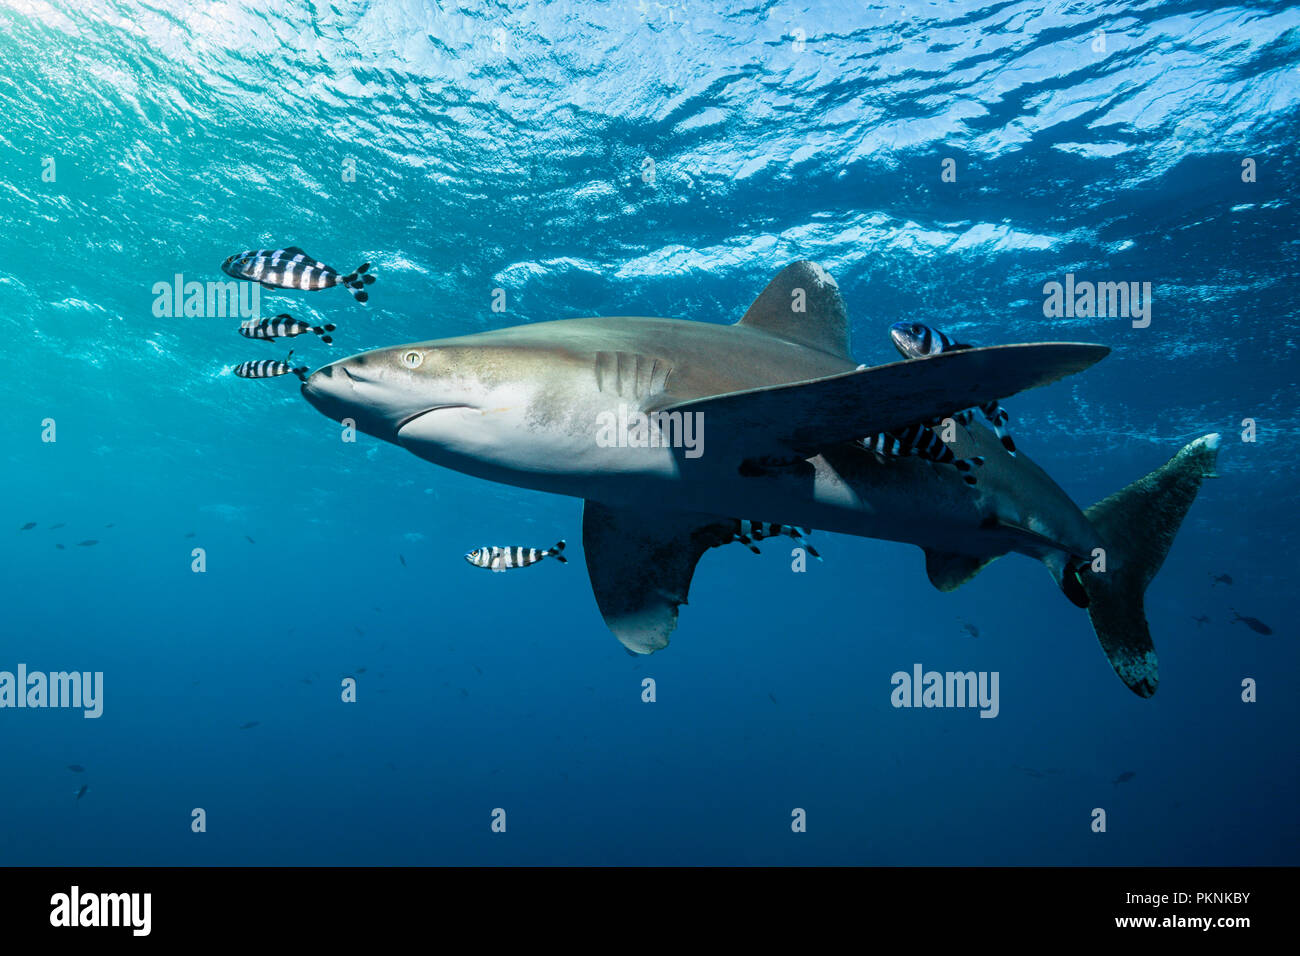 Oceanic Whitetip Shark, Carcharhinus longimanus, Brother Islands, Red Sea, Egypt - Stock Image